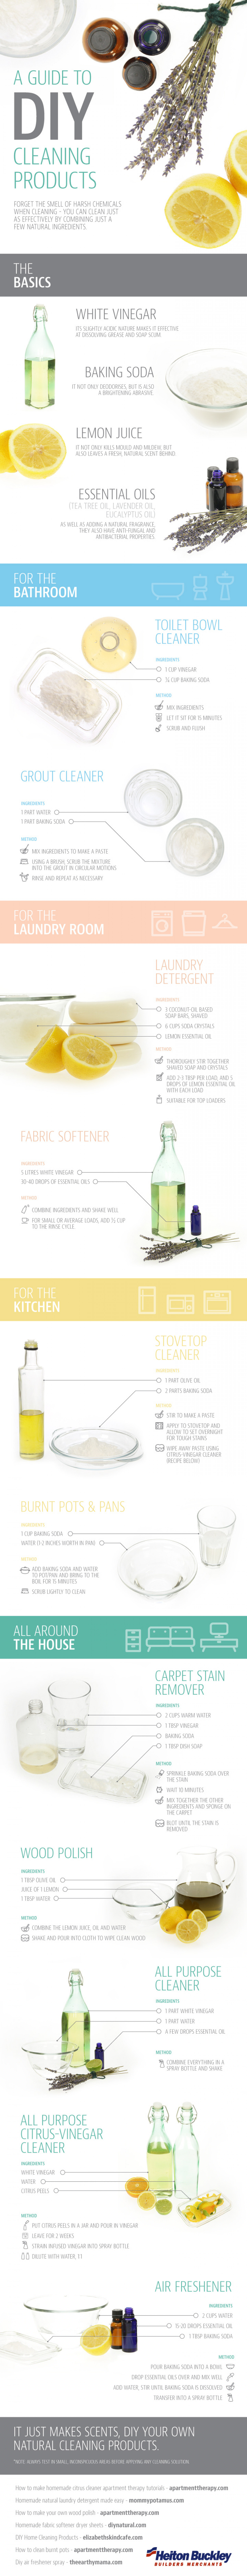 A Guide to DIY Cleanning Products Infographic